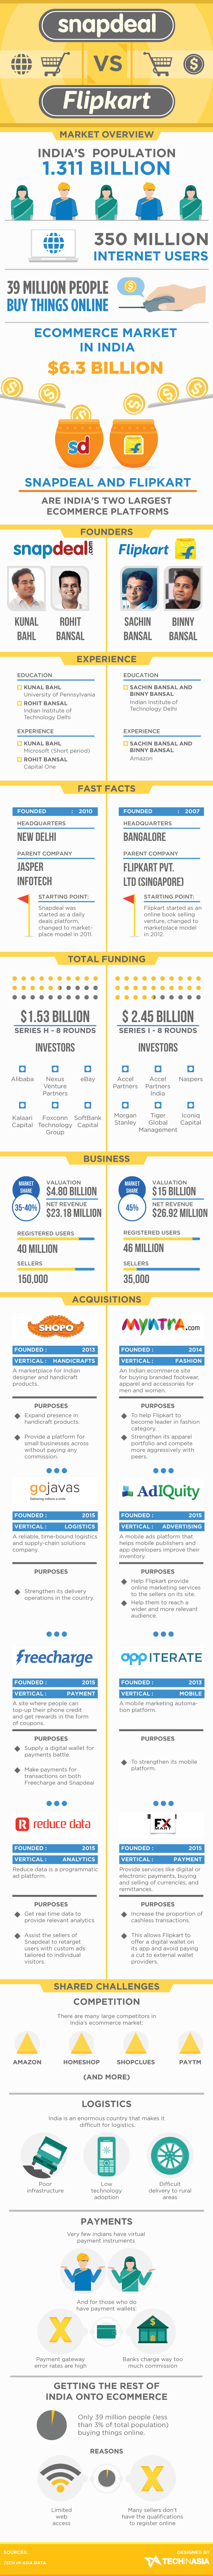 https://www.techinasia.com/flipkart-snapdeal-battle-indias-online-shoppers-infographic/